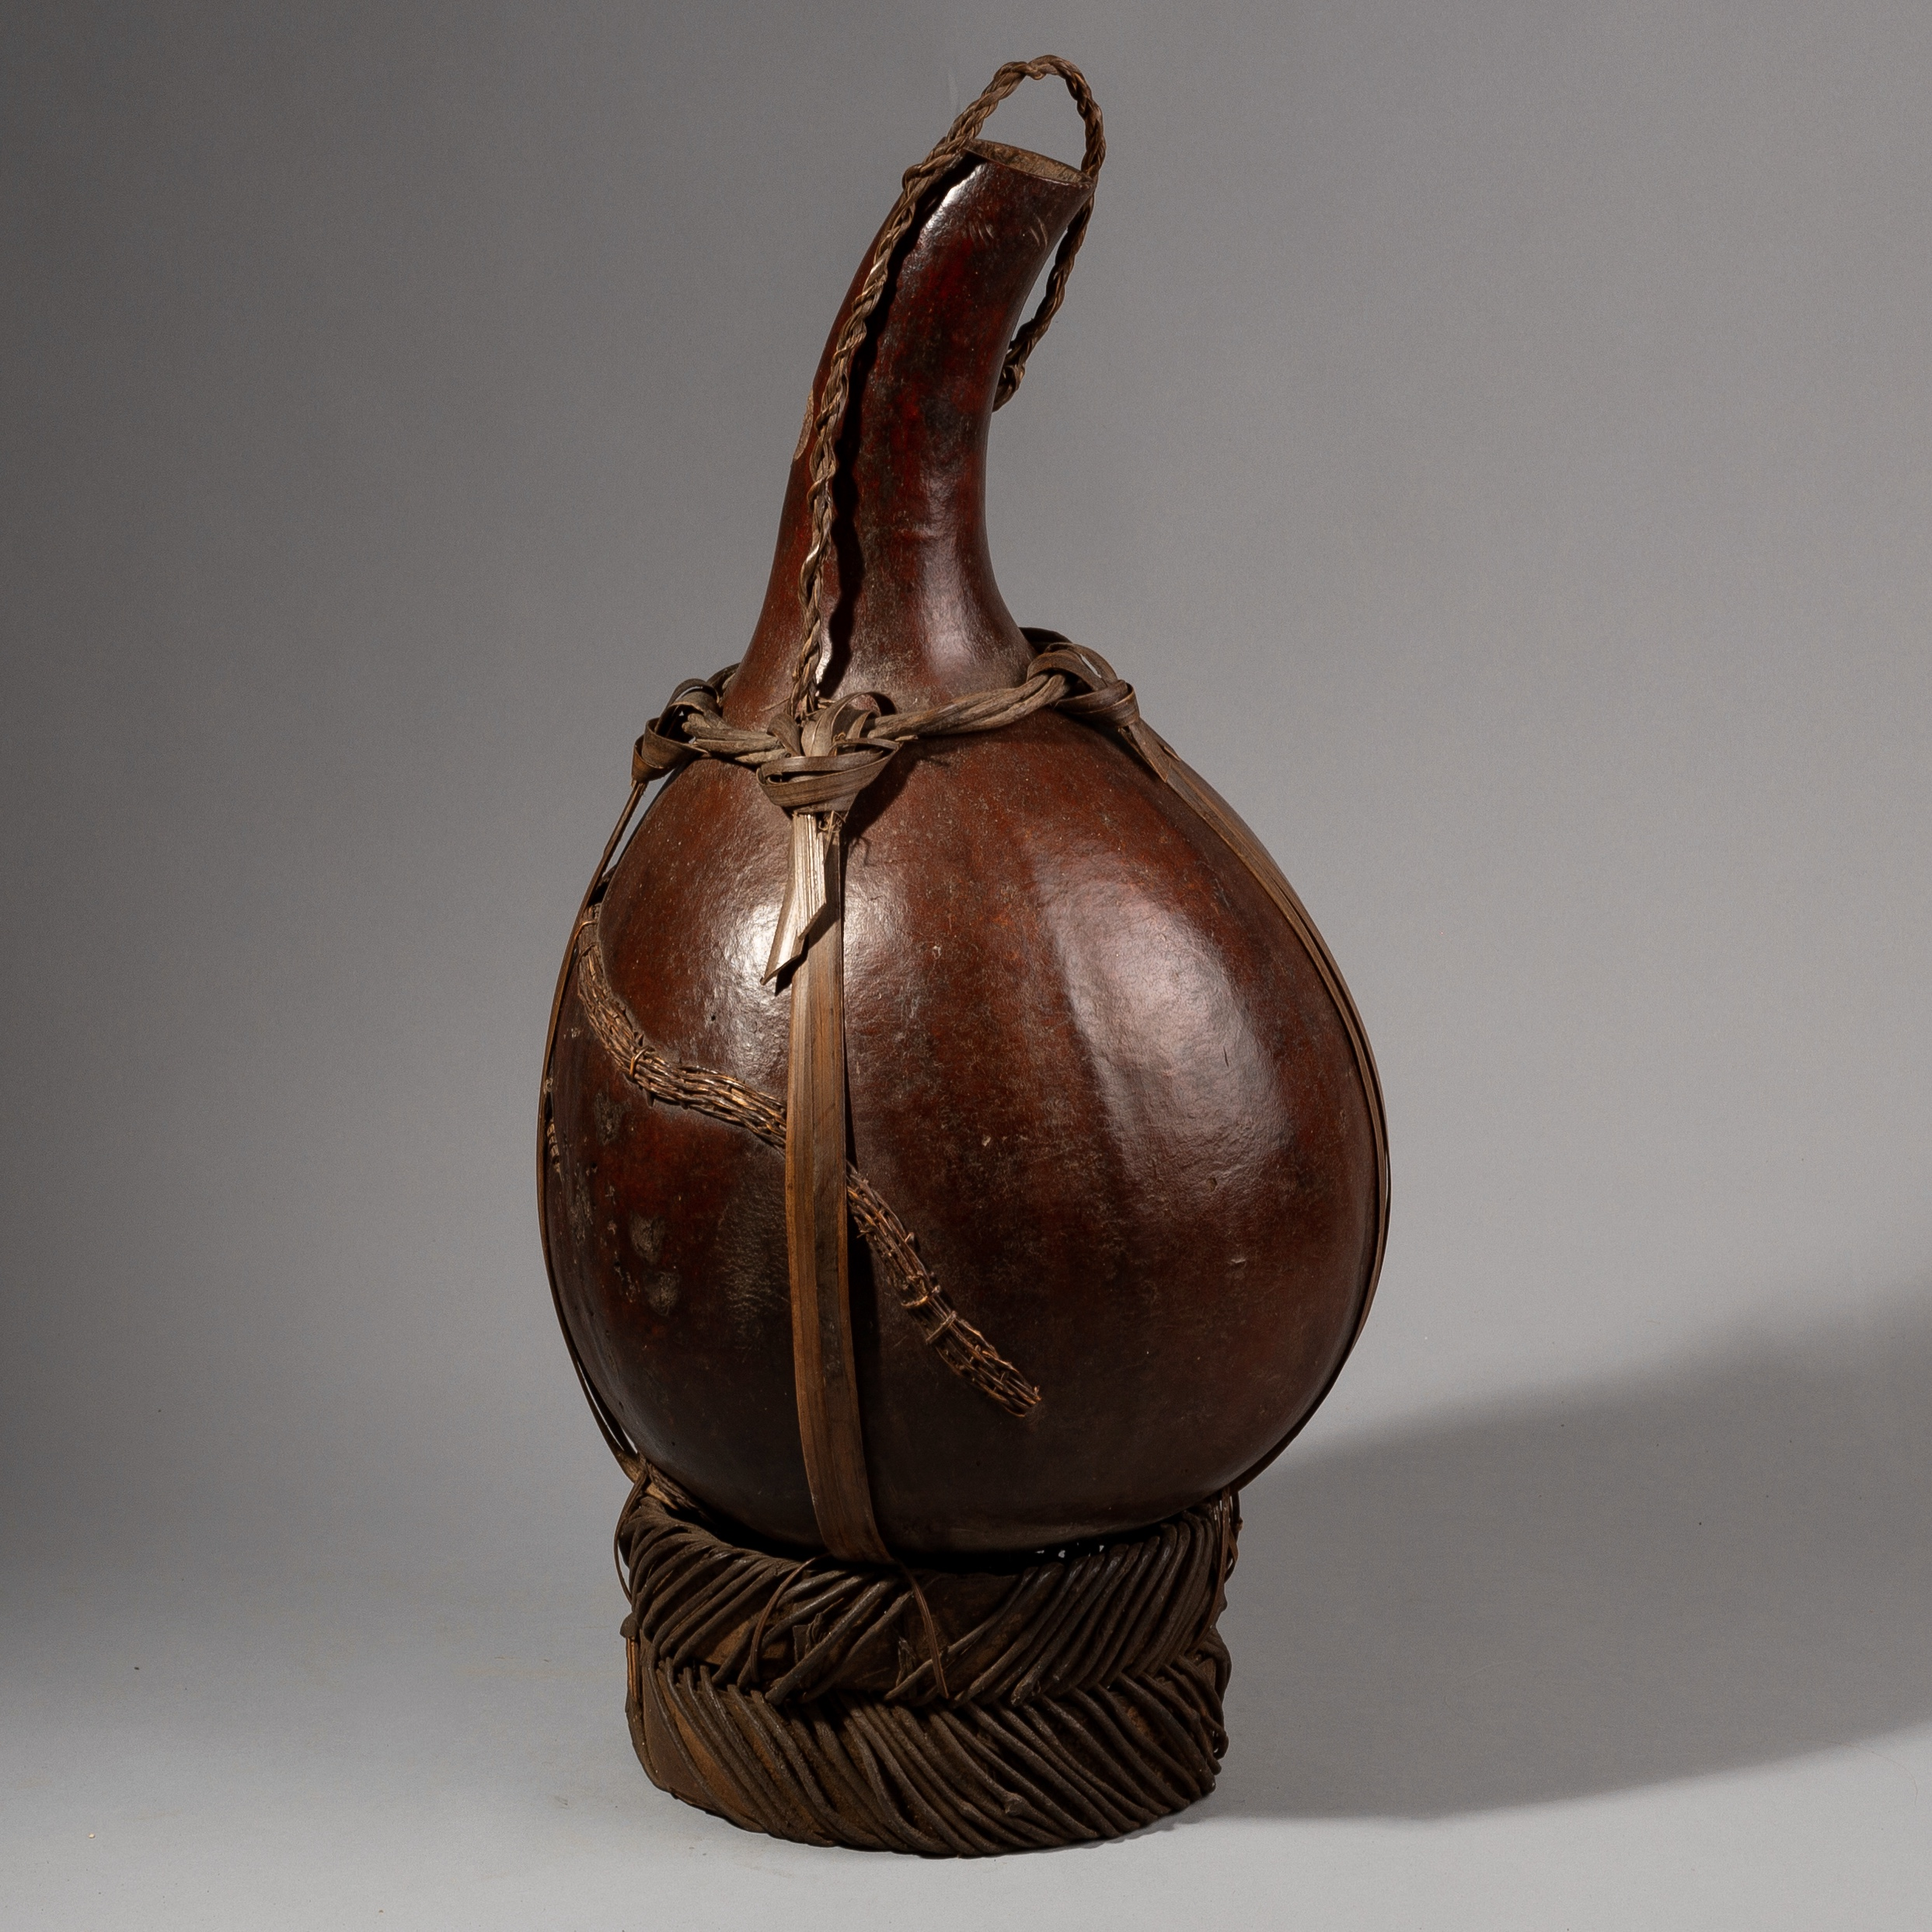 SD A LARGE VEGETABLE GOURD VESSEL FROM BAMILEKE TRIBE OF CAMEROON ( No 1358 )